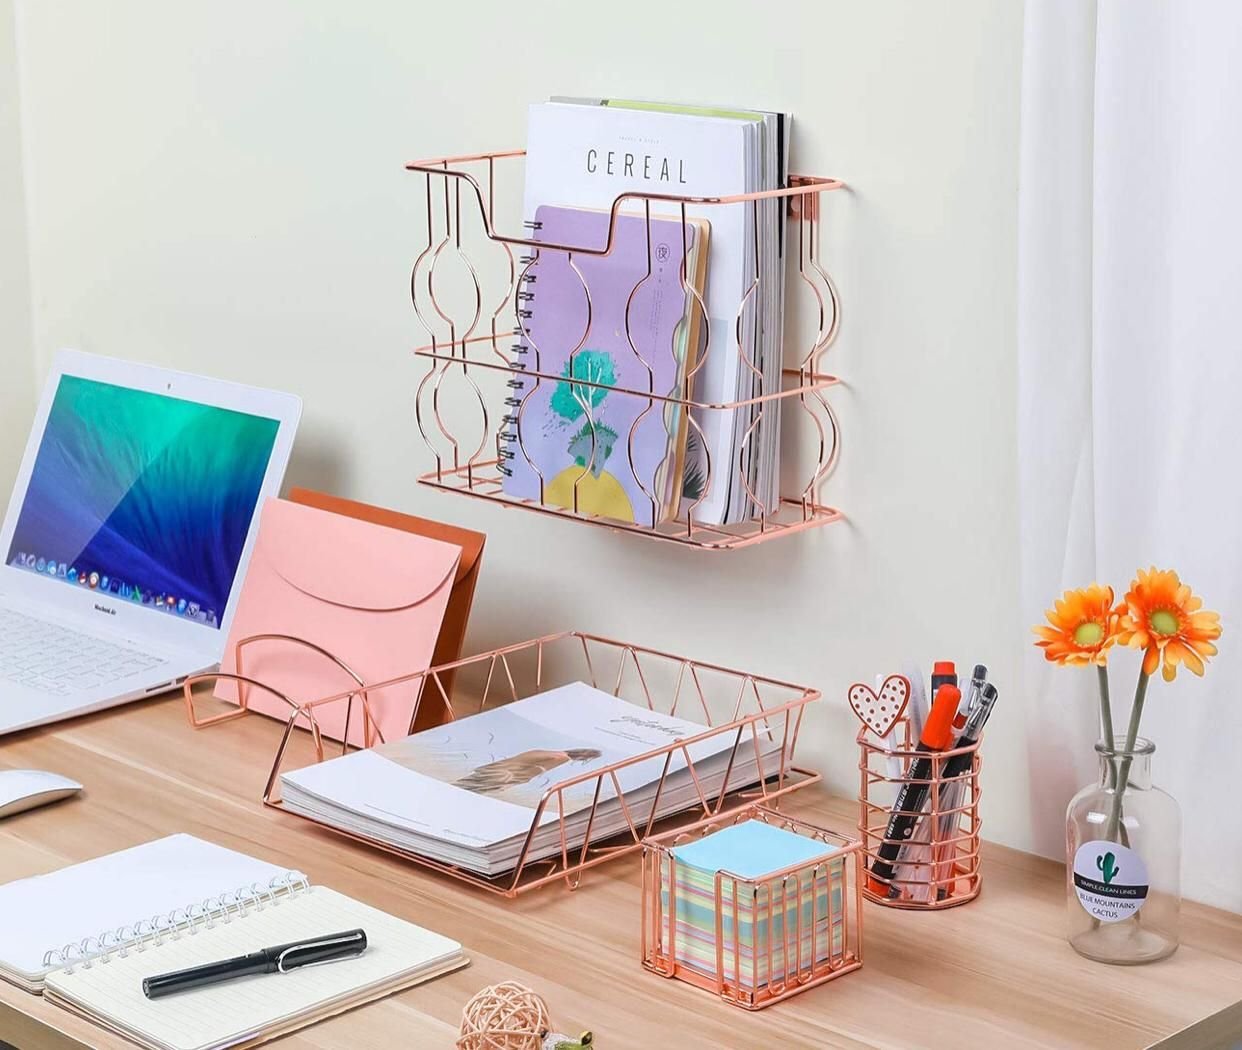 Pag Rose Gold Office Supplies 5 In 1 Metal Desk Organizer Set Hanging File Organizer File Tray Gold Office Supplies Office Organization At Work Gold Office